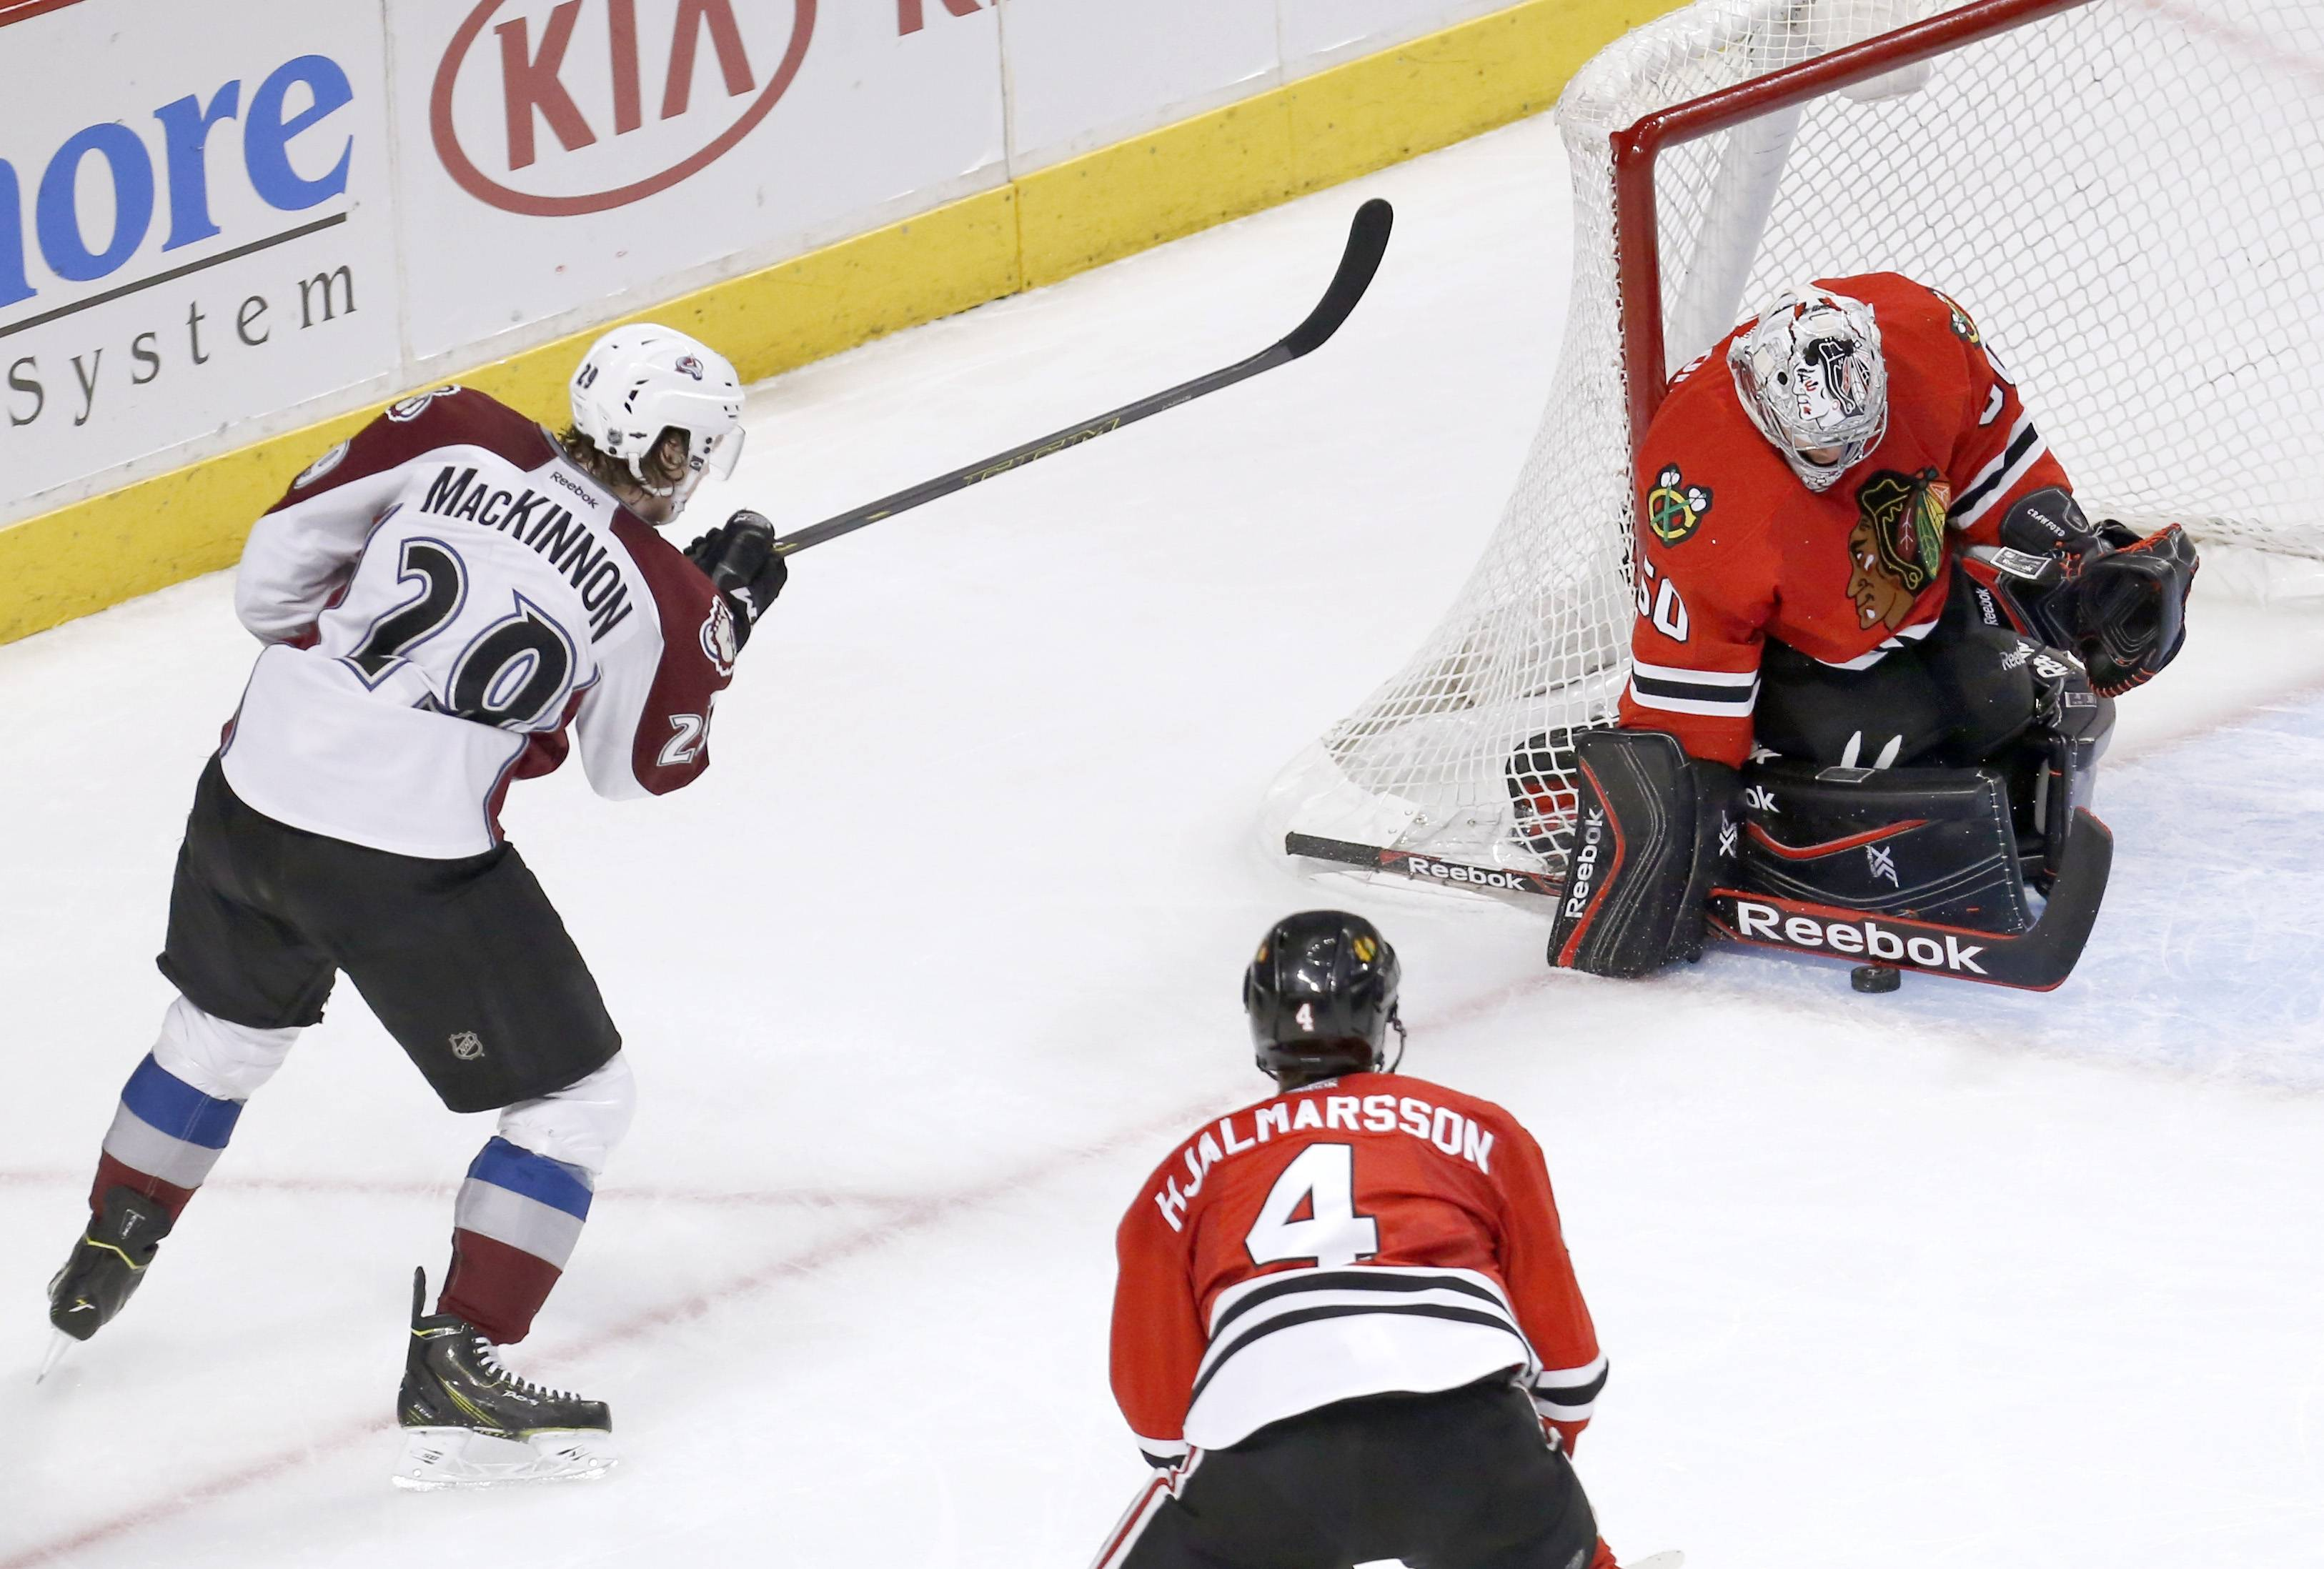 Chicago Blackhawks goalie Corey Crawford (50) makes a save on a shot by Colorado Avalanche center Nathan MacKinnon (29) as Niklas Hjalmarsson (4) watches during Tuesday night's match at the United Center.